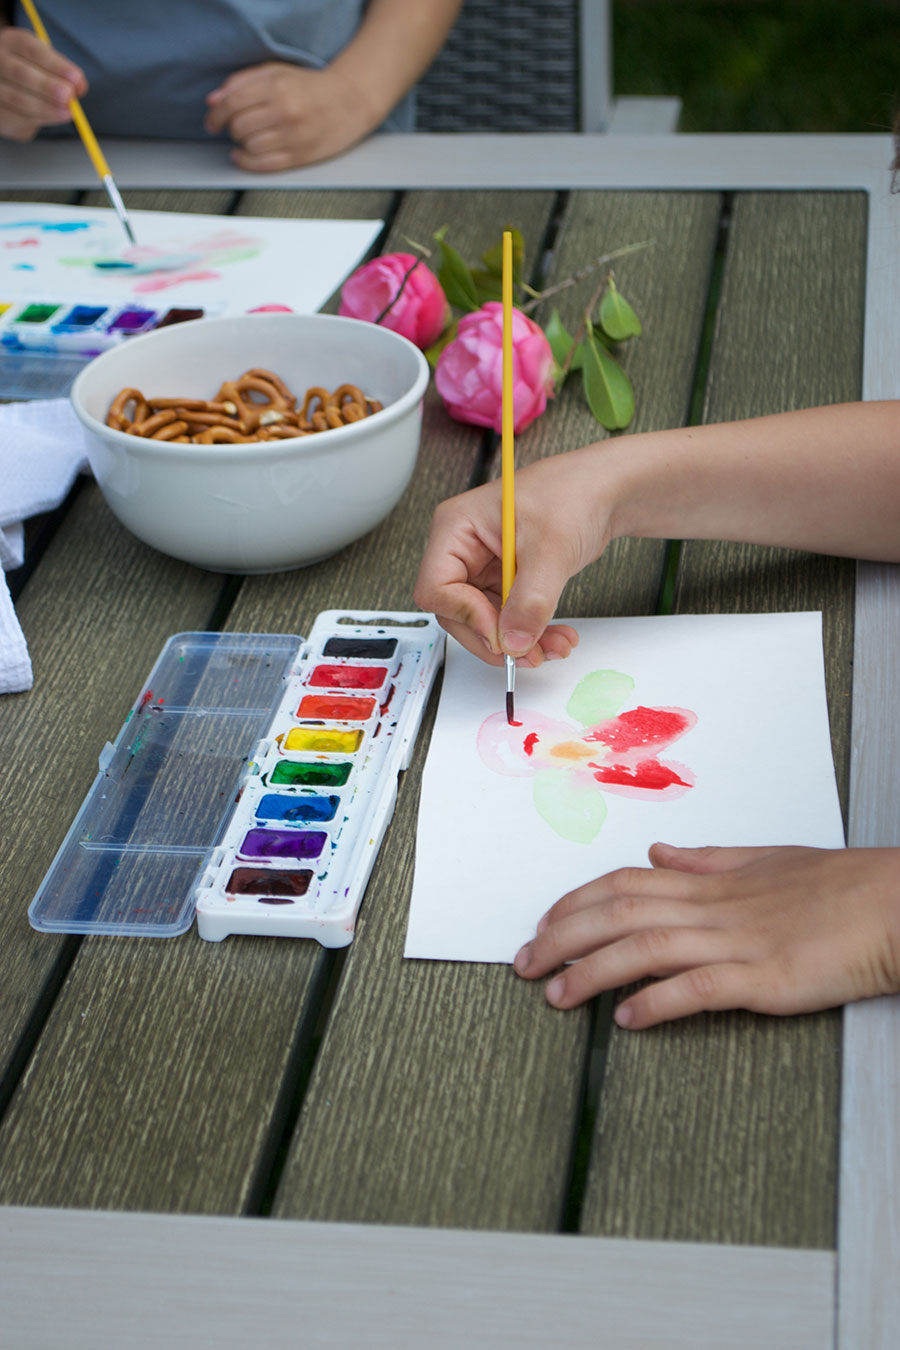 detail of child's watercolor painting on patio table